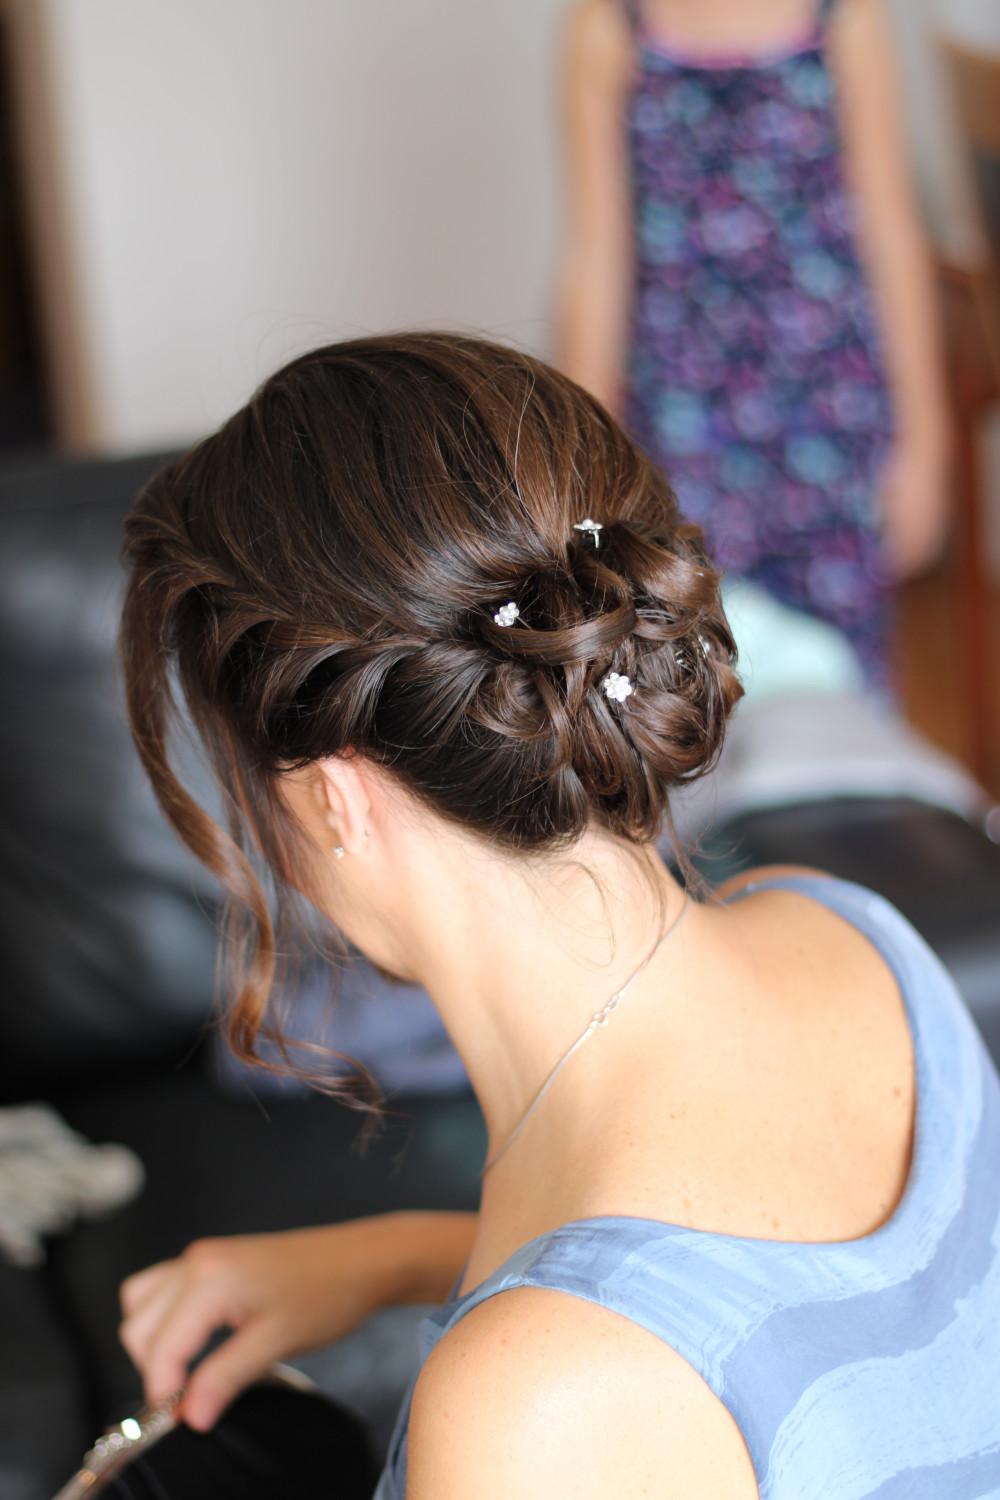 A simple but really effective way of putting up shorter hair and this bridesmaid had pretty pins to accessorise it with - Make Me Bridal Artist: Kimberly Holland Bridal Hair & Makeup Artist. Photography by: Kimberly Holland. #bridalhair #bridalhairstylist #bridesmaidhair #soft #romantic #shorthair #twistedupdo #simplehair